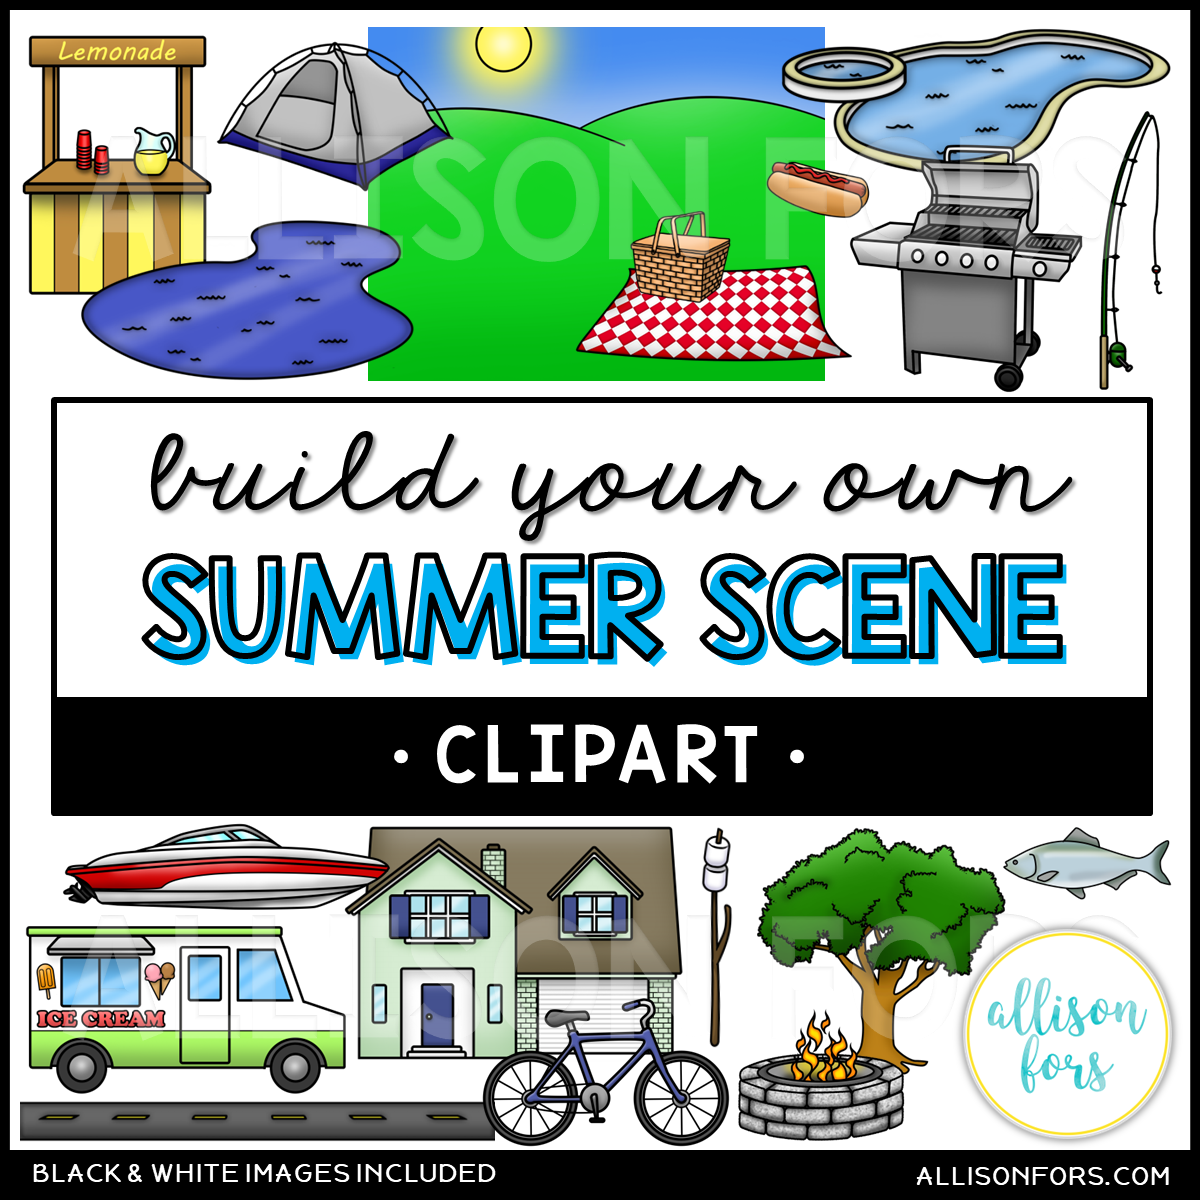 Carryover clipart graphic transparent library Build Your Own: Summer Scene Clip Art graphic transparent library